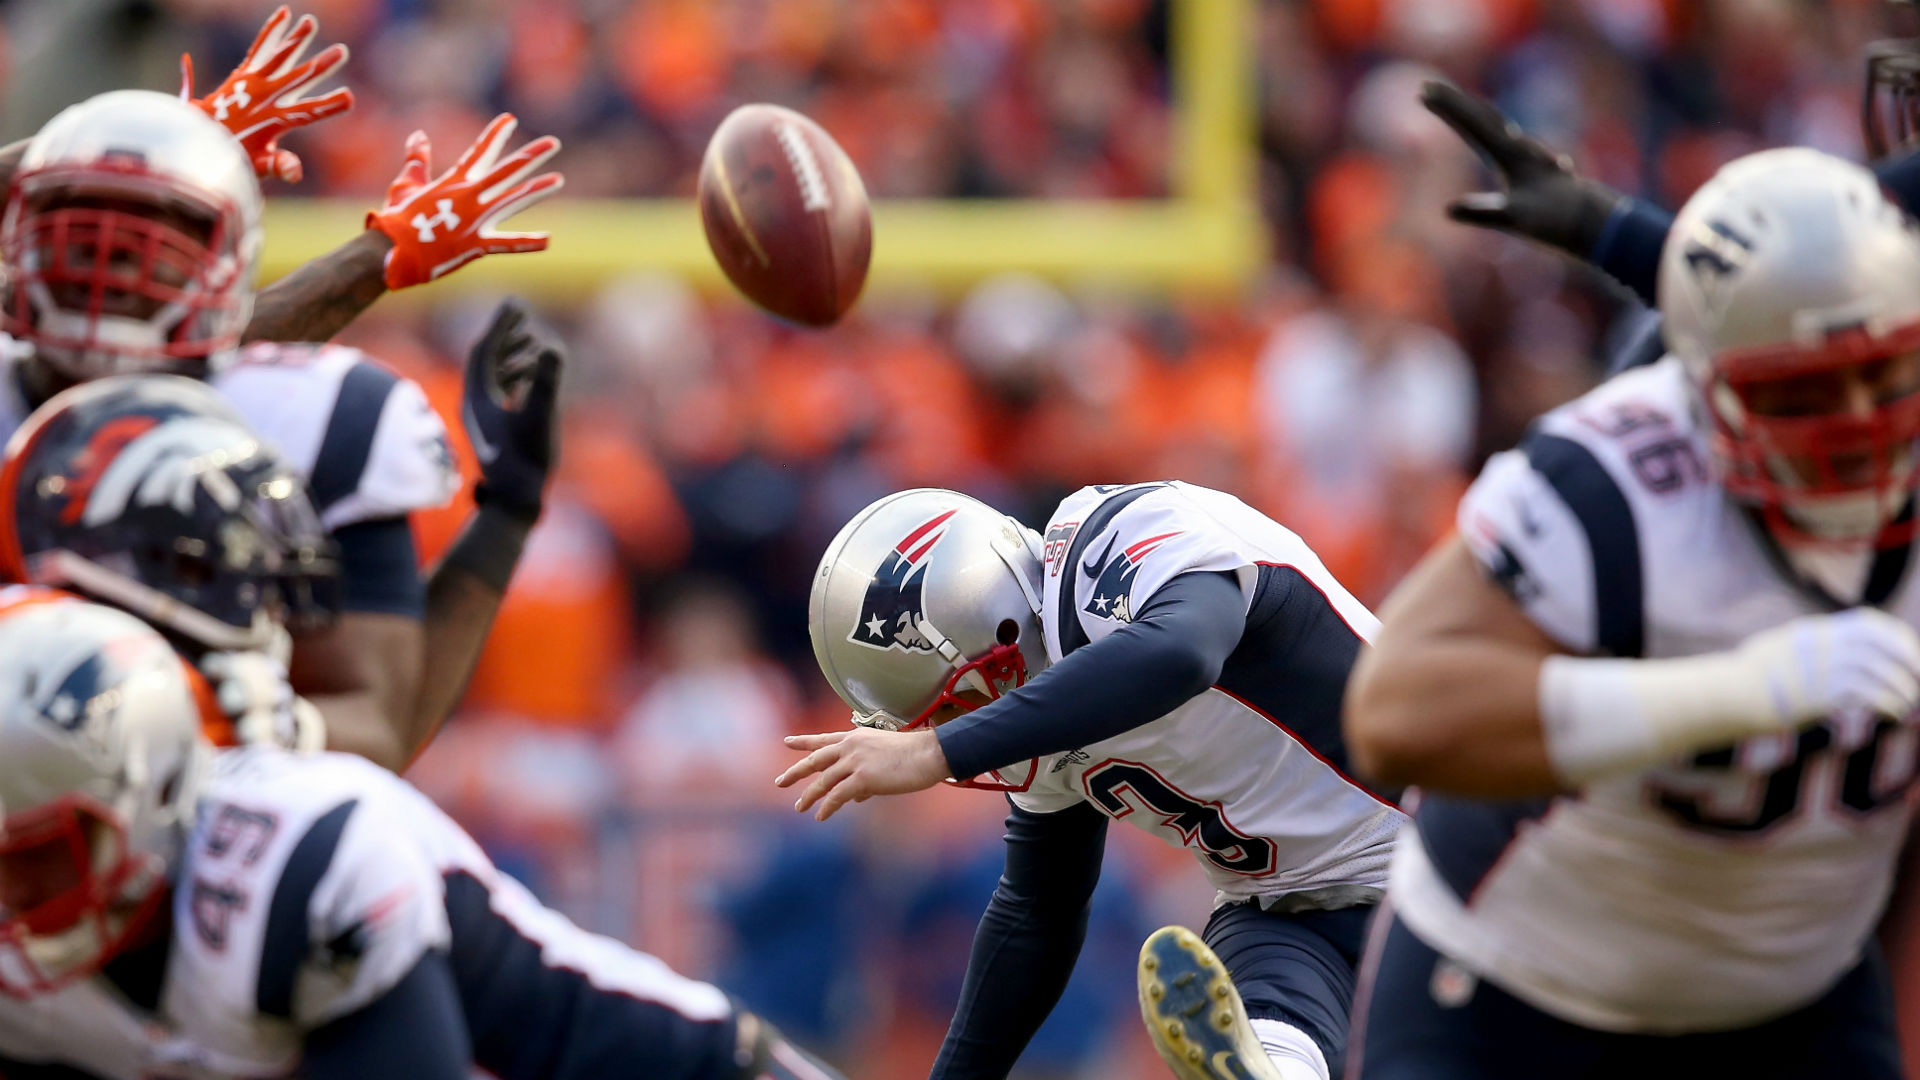 Patriots audition kicker Nick Rose in wake of Stephen Gostkowski's injury